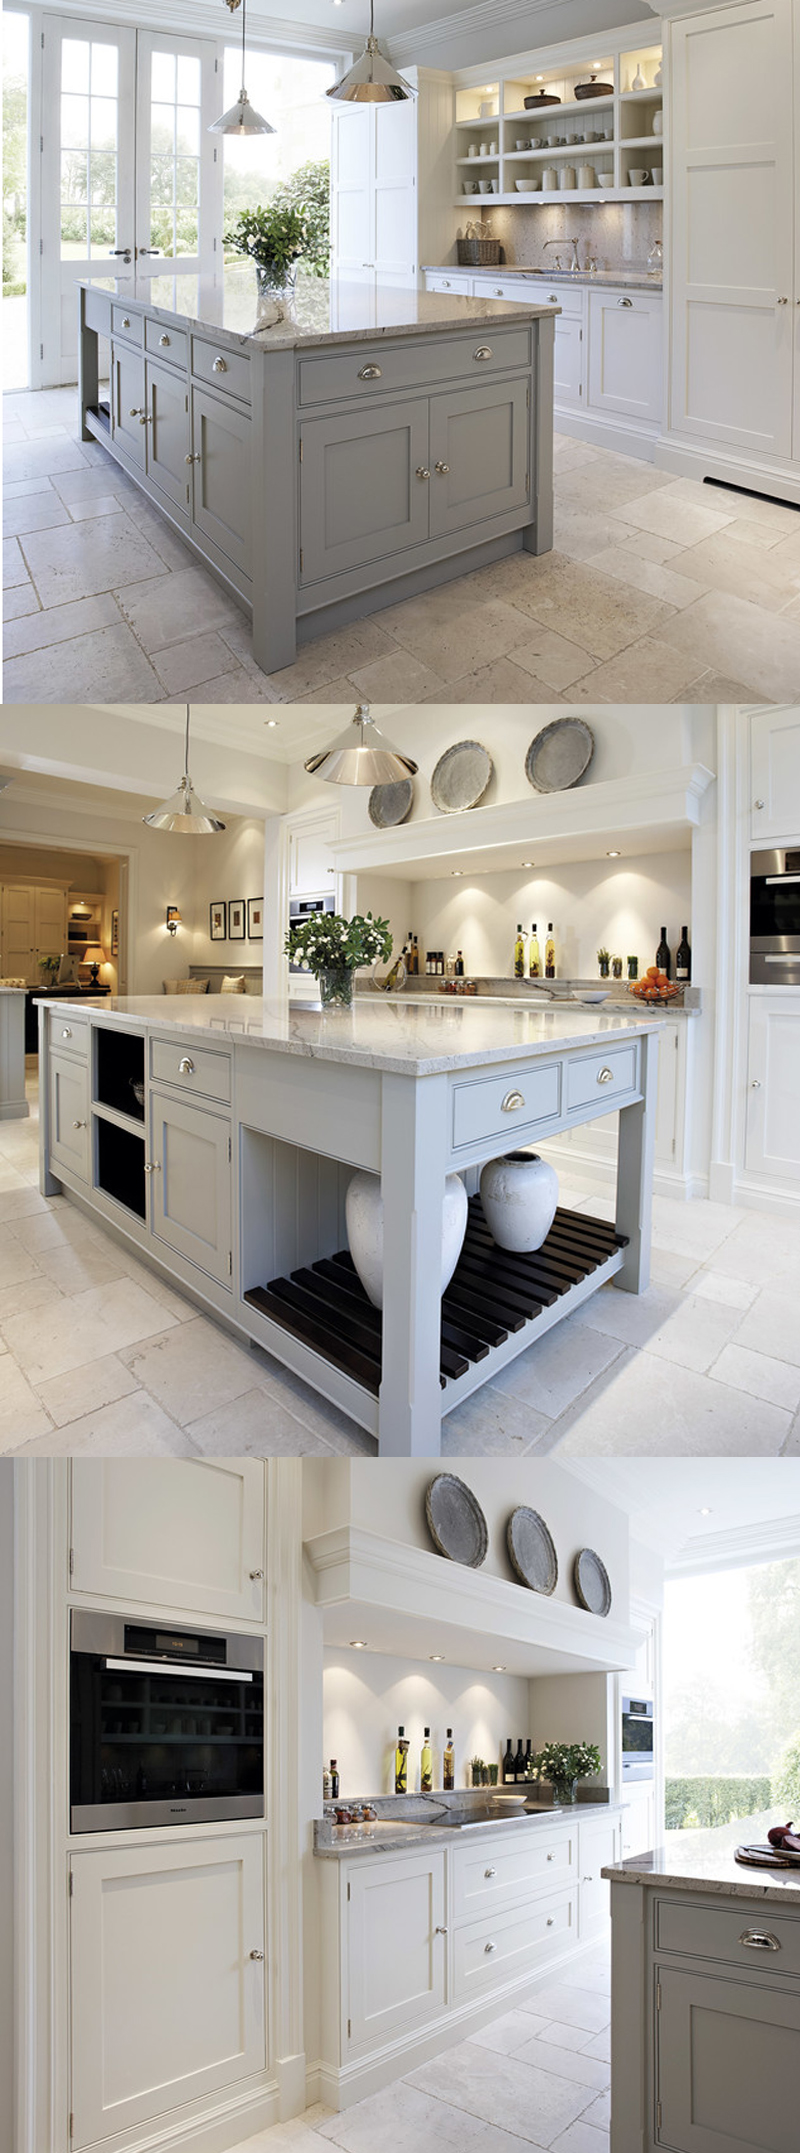 shaker cabinets white